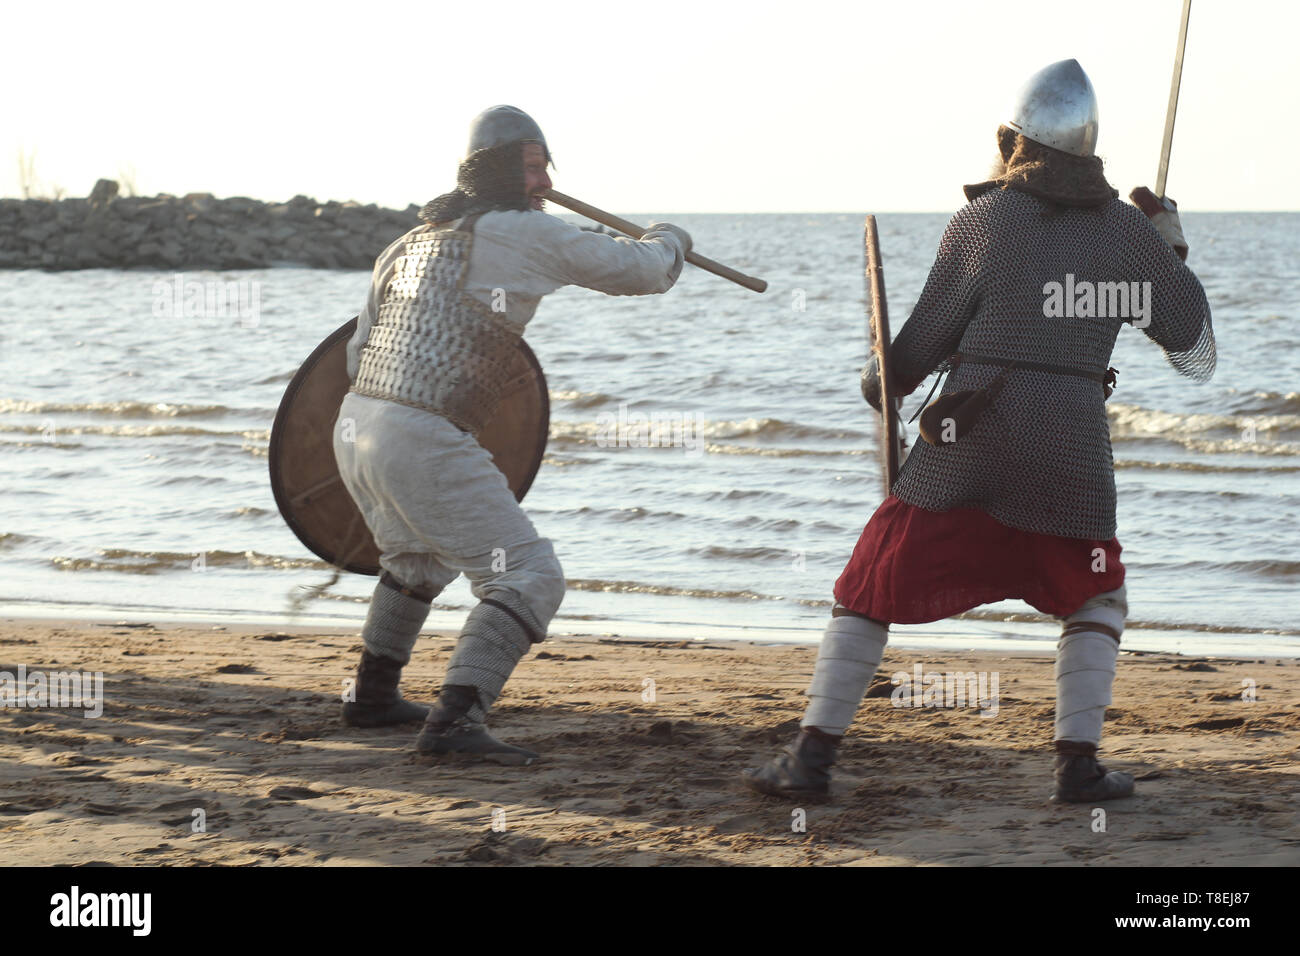 Two medieval Slav warriors are fighting with swords and shields on the beach - Stock Image